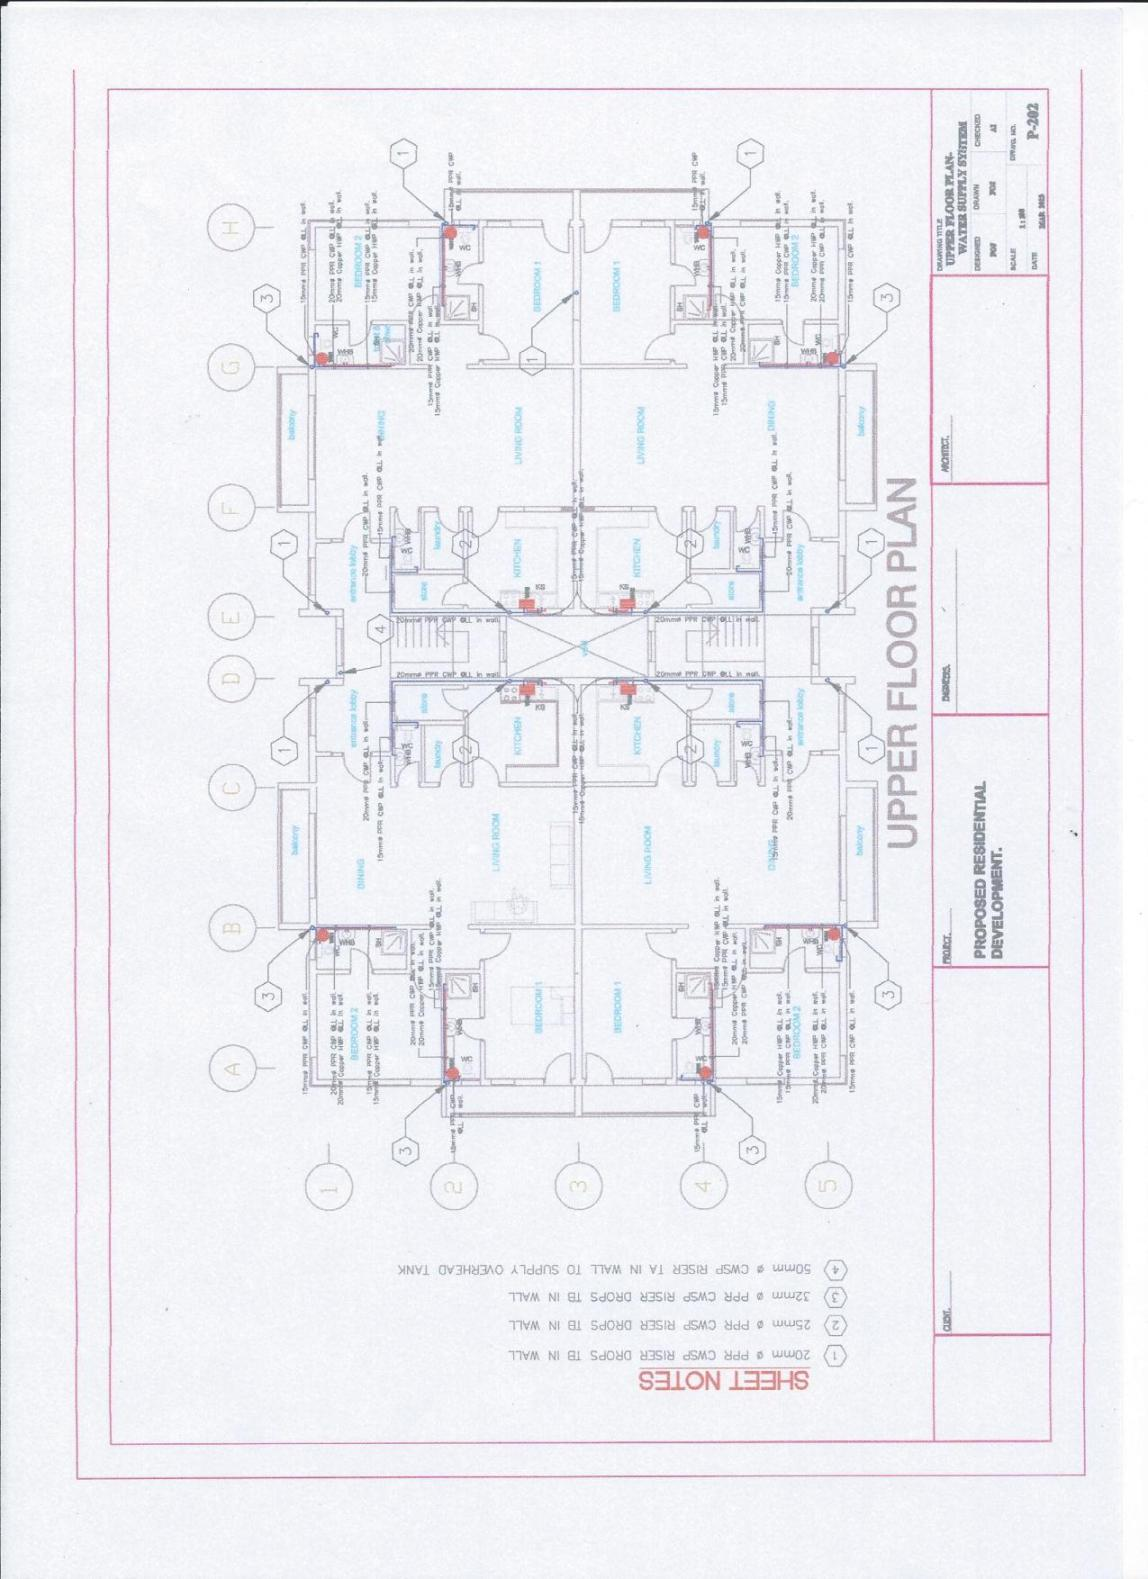 Contact Us For Your Electrical/mechanical(Plumbing) Design